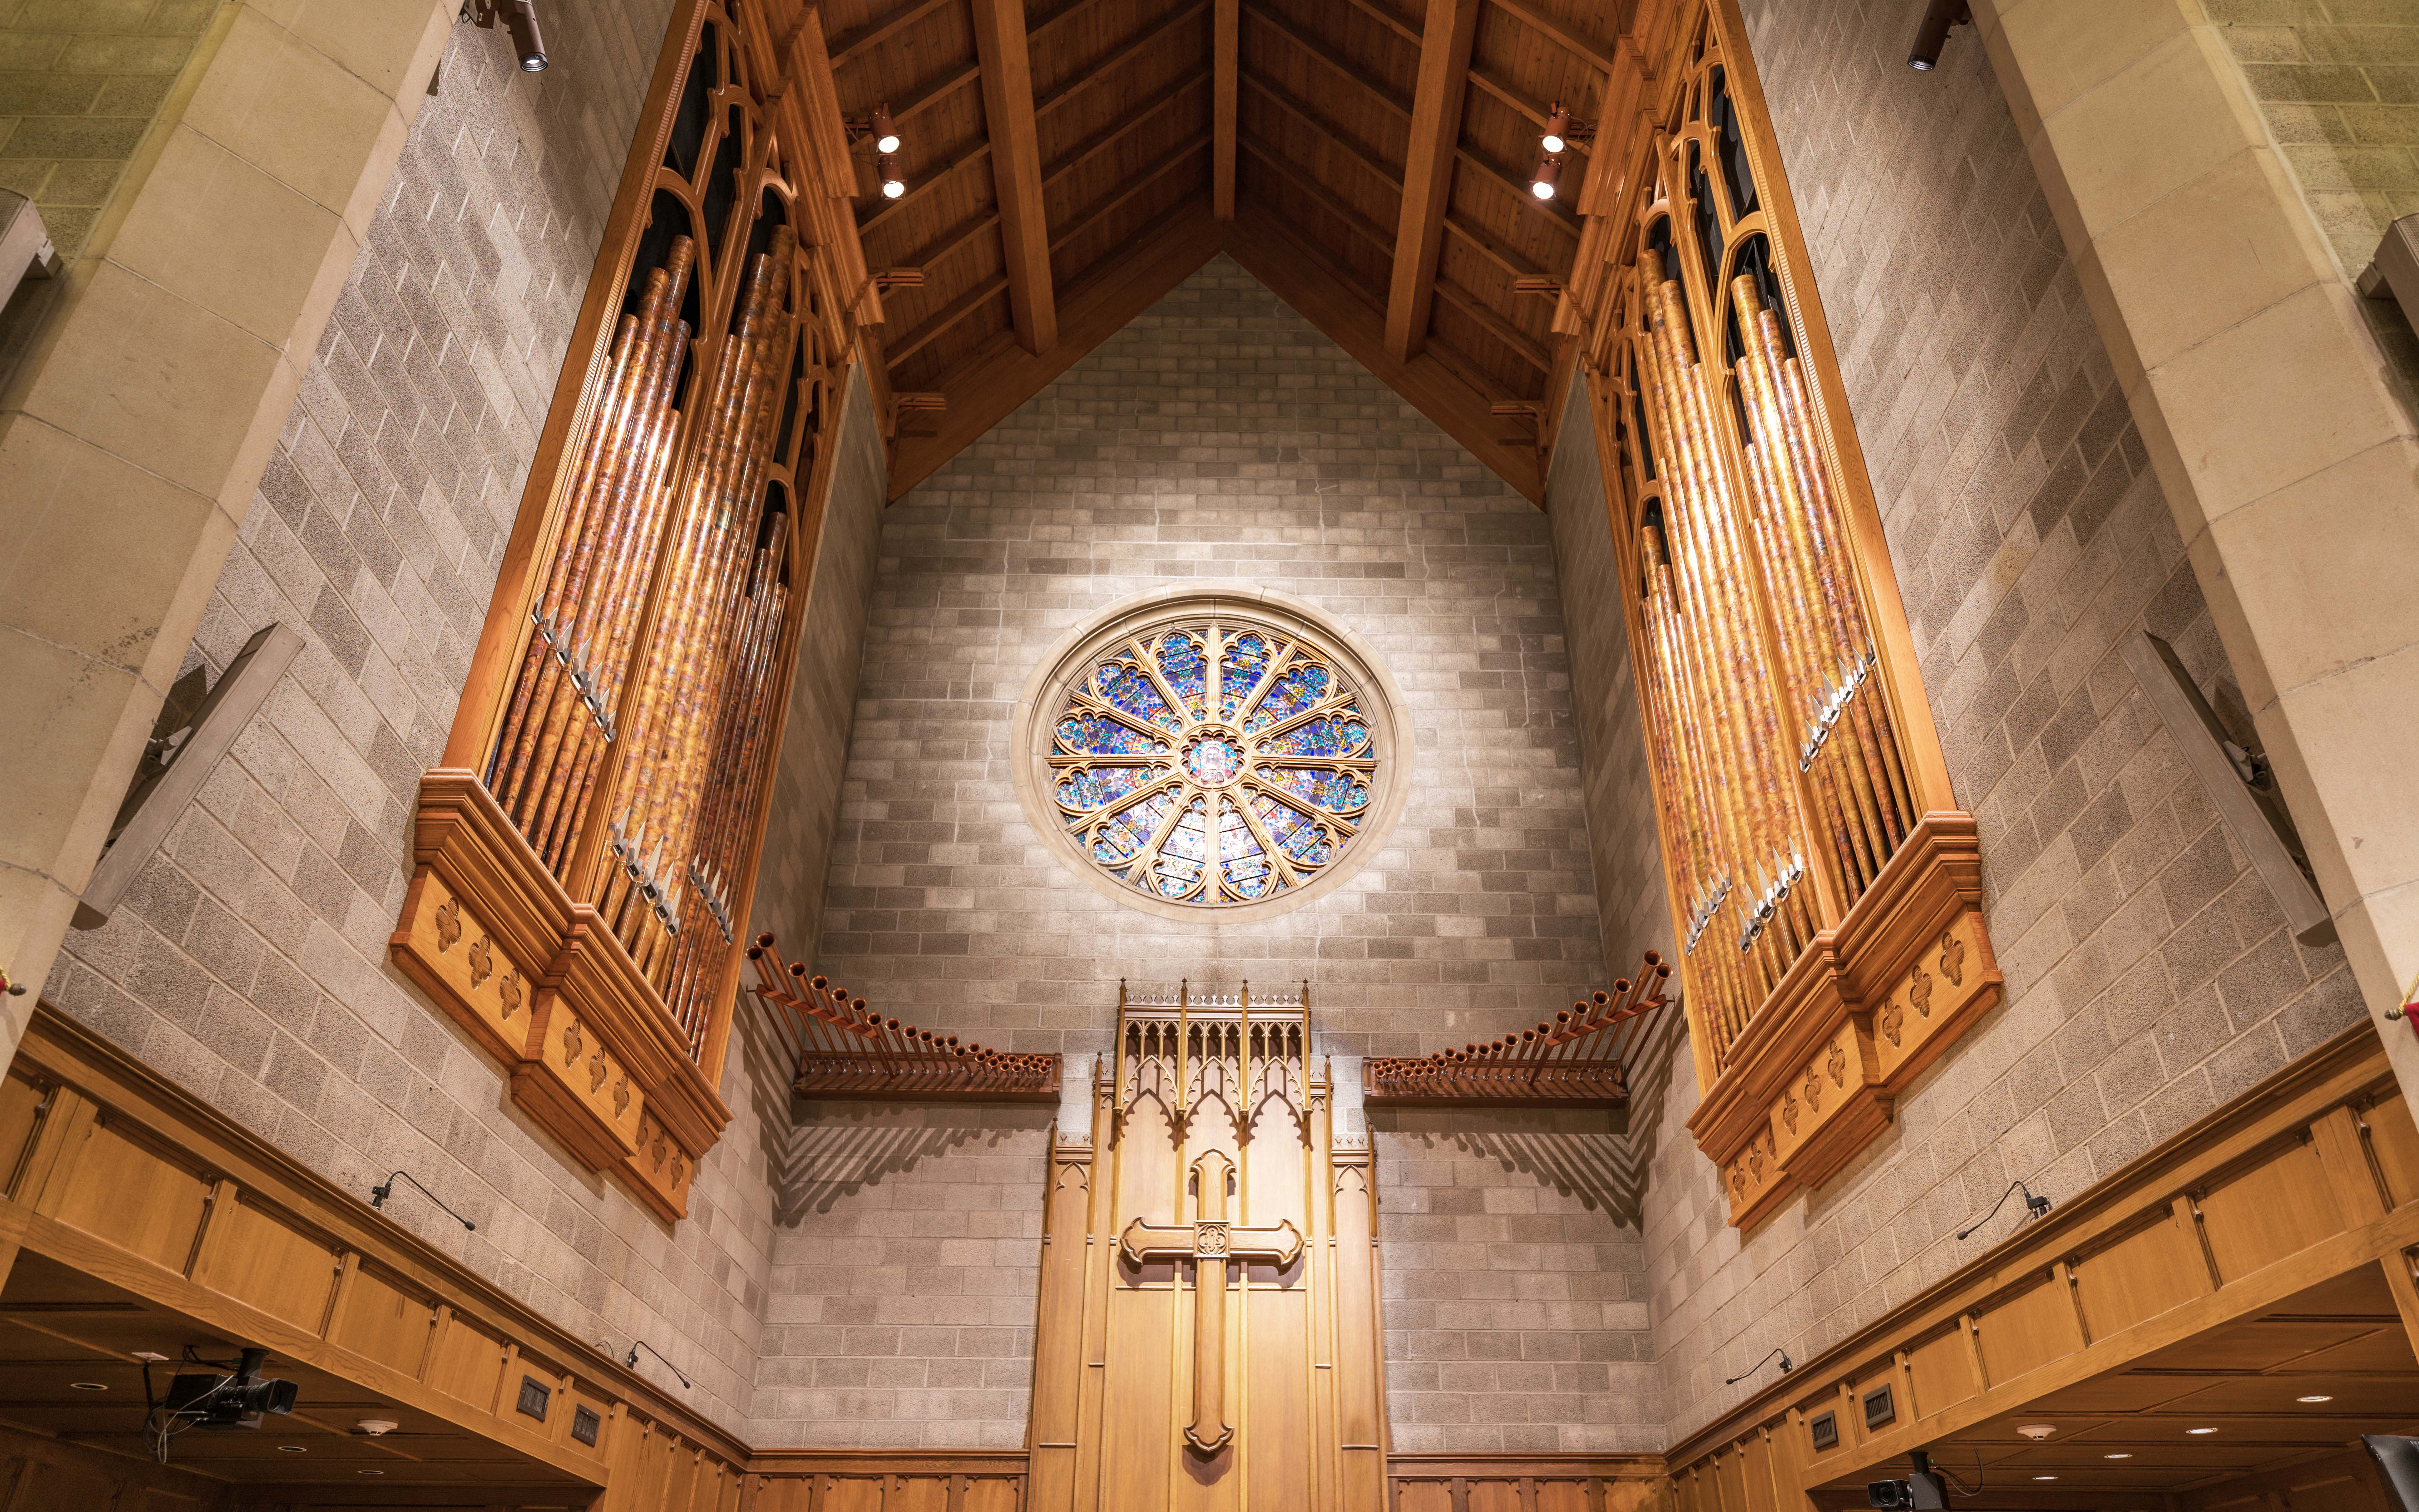 Tucked tightly into the peaceful sanctuary at Pulaski Heights United Methodist Church, sits one of many Nichols & Simpson completed organs. (Photo by Bobby Burton)